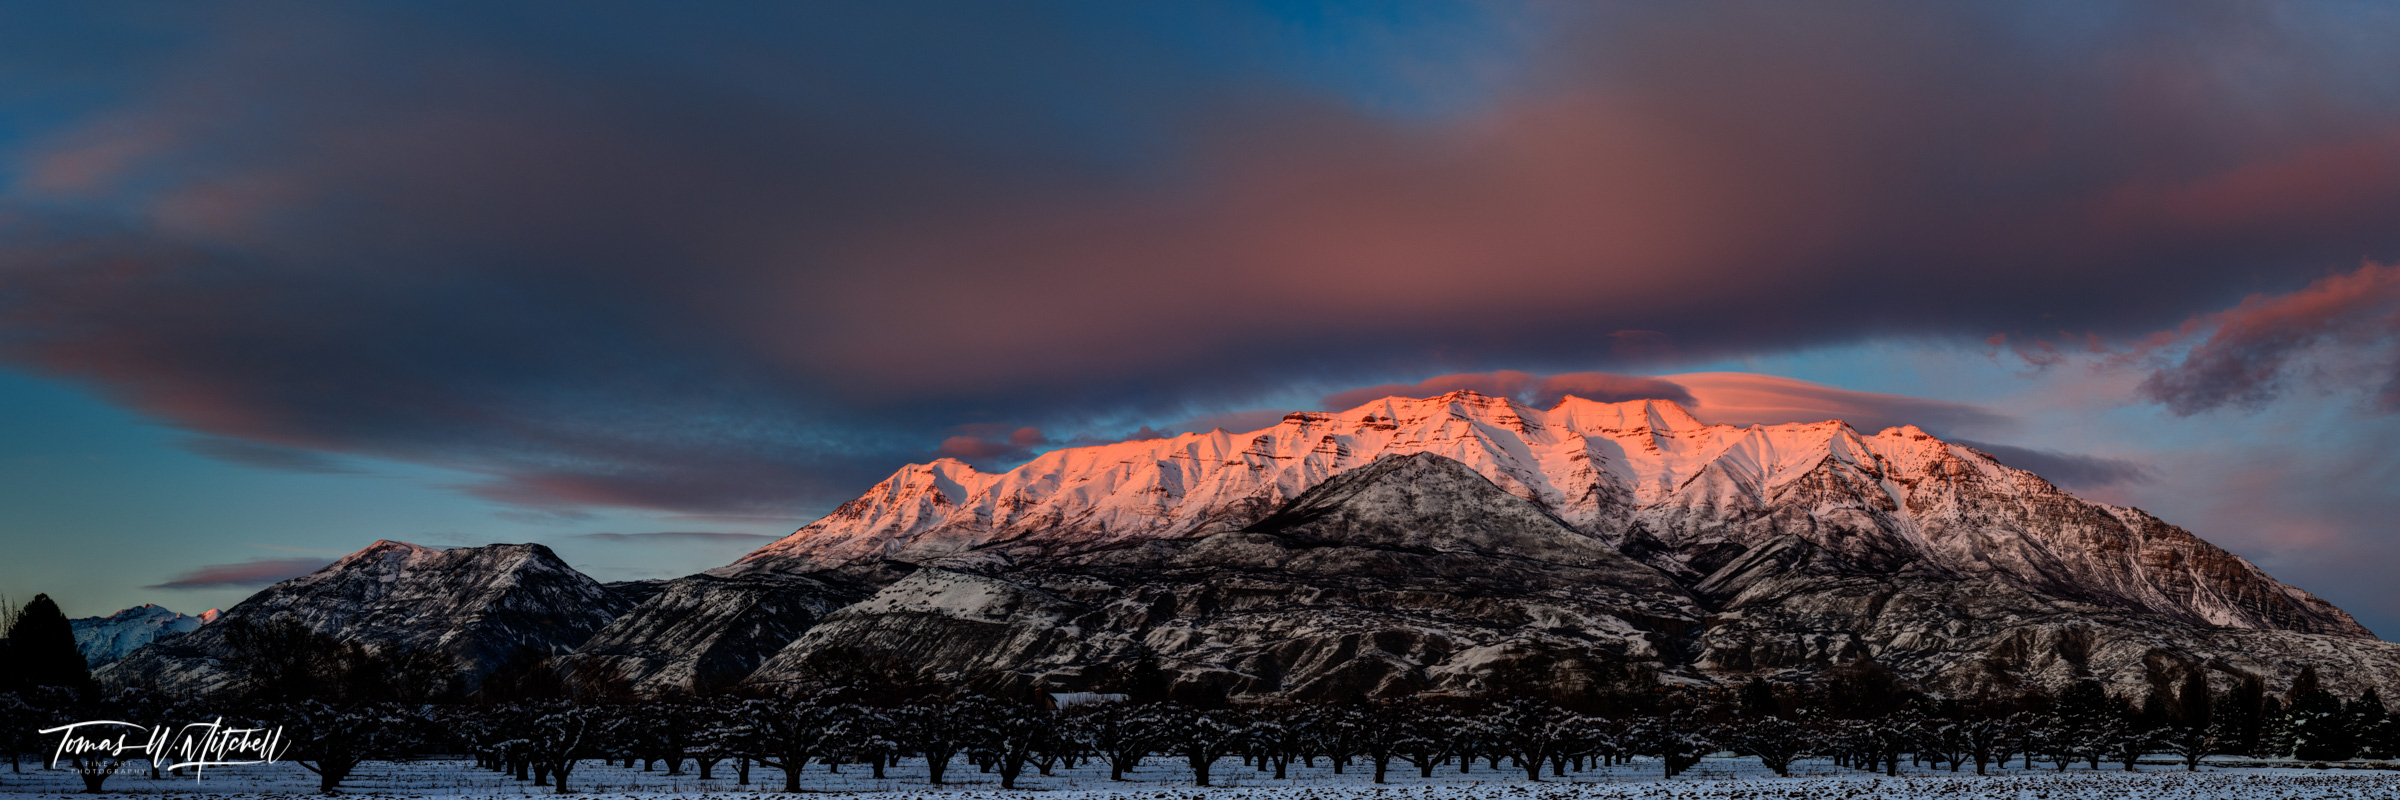 Limited Edition of 100 Museum Grade, Fine Art Prints. I grew up in Provo, Utah and Mount Timpanogos or just Timp as locals call...